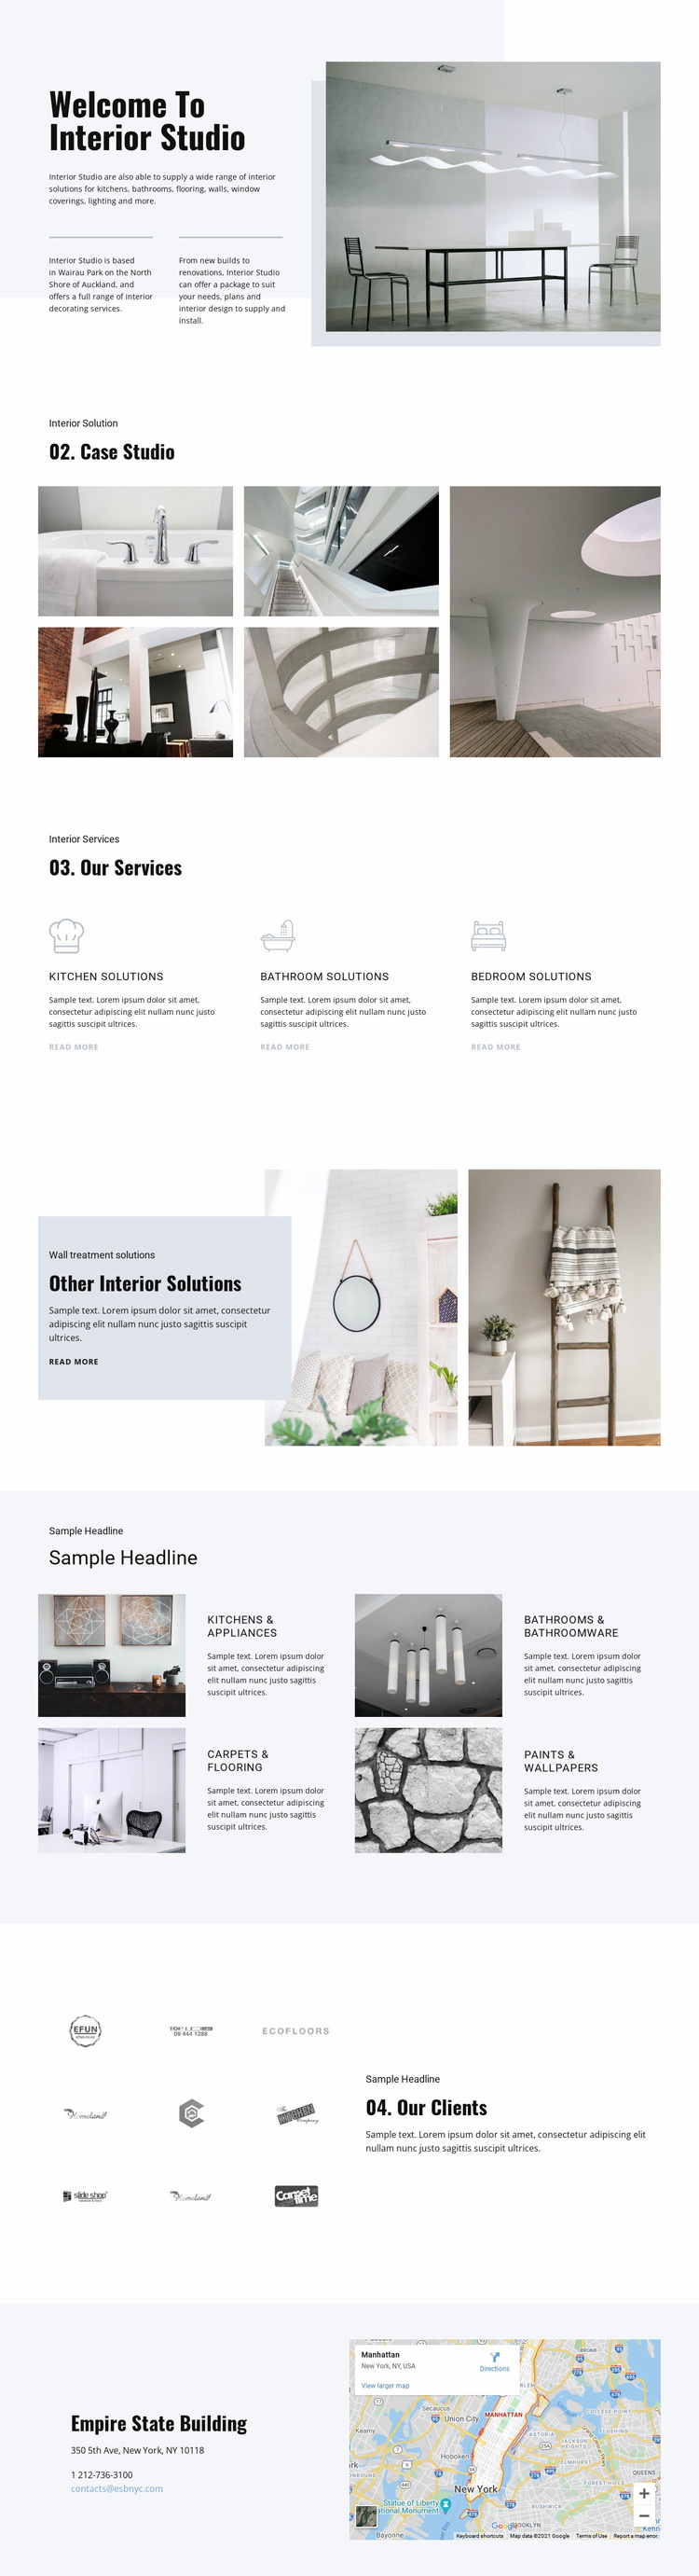 Welcome to interior studio Landing Page